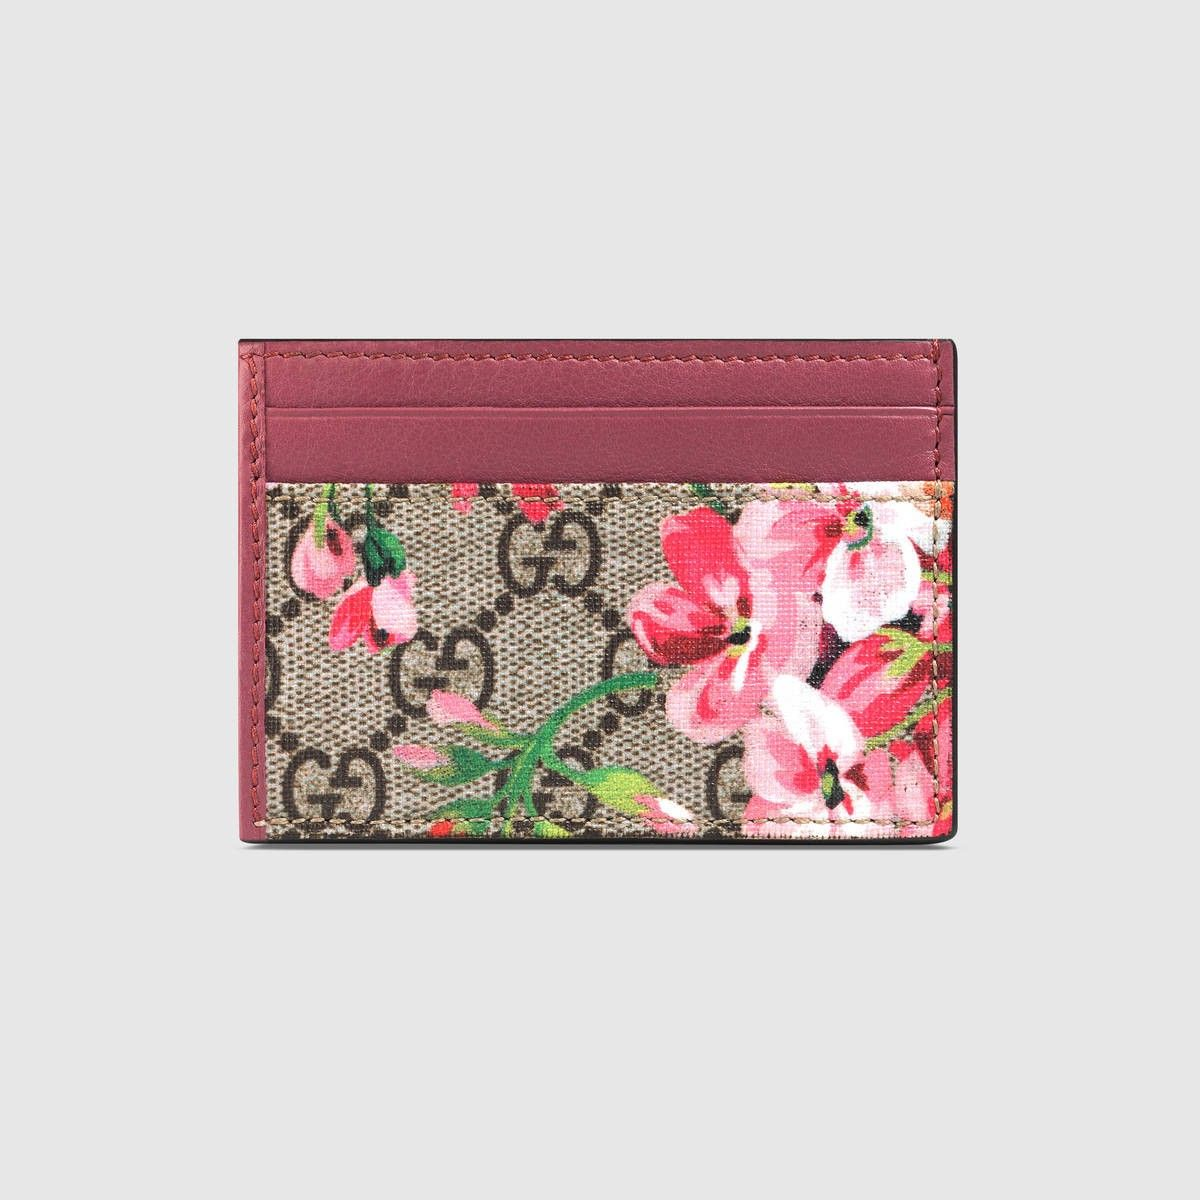 17480ff6fc7 GUCCI Gg Blooms Card Case - Gg Supreme Canvas Blooms.  gucci  bags  leather   canvas